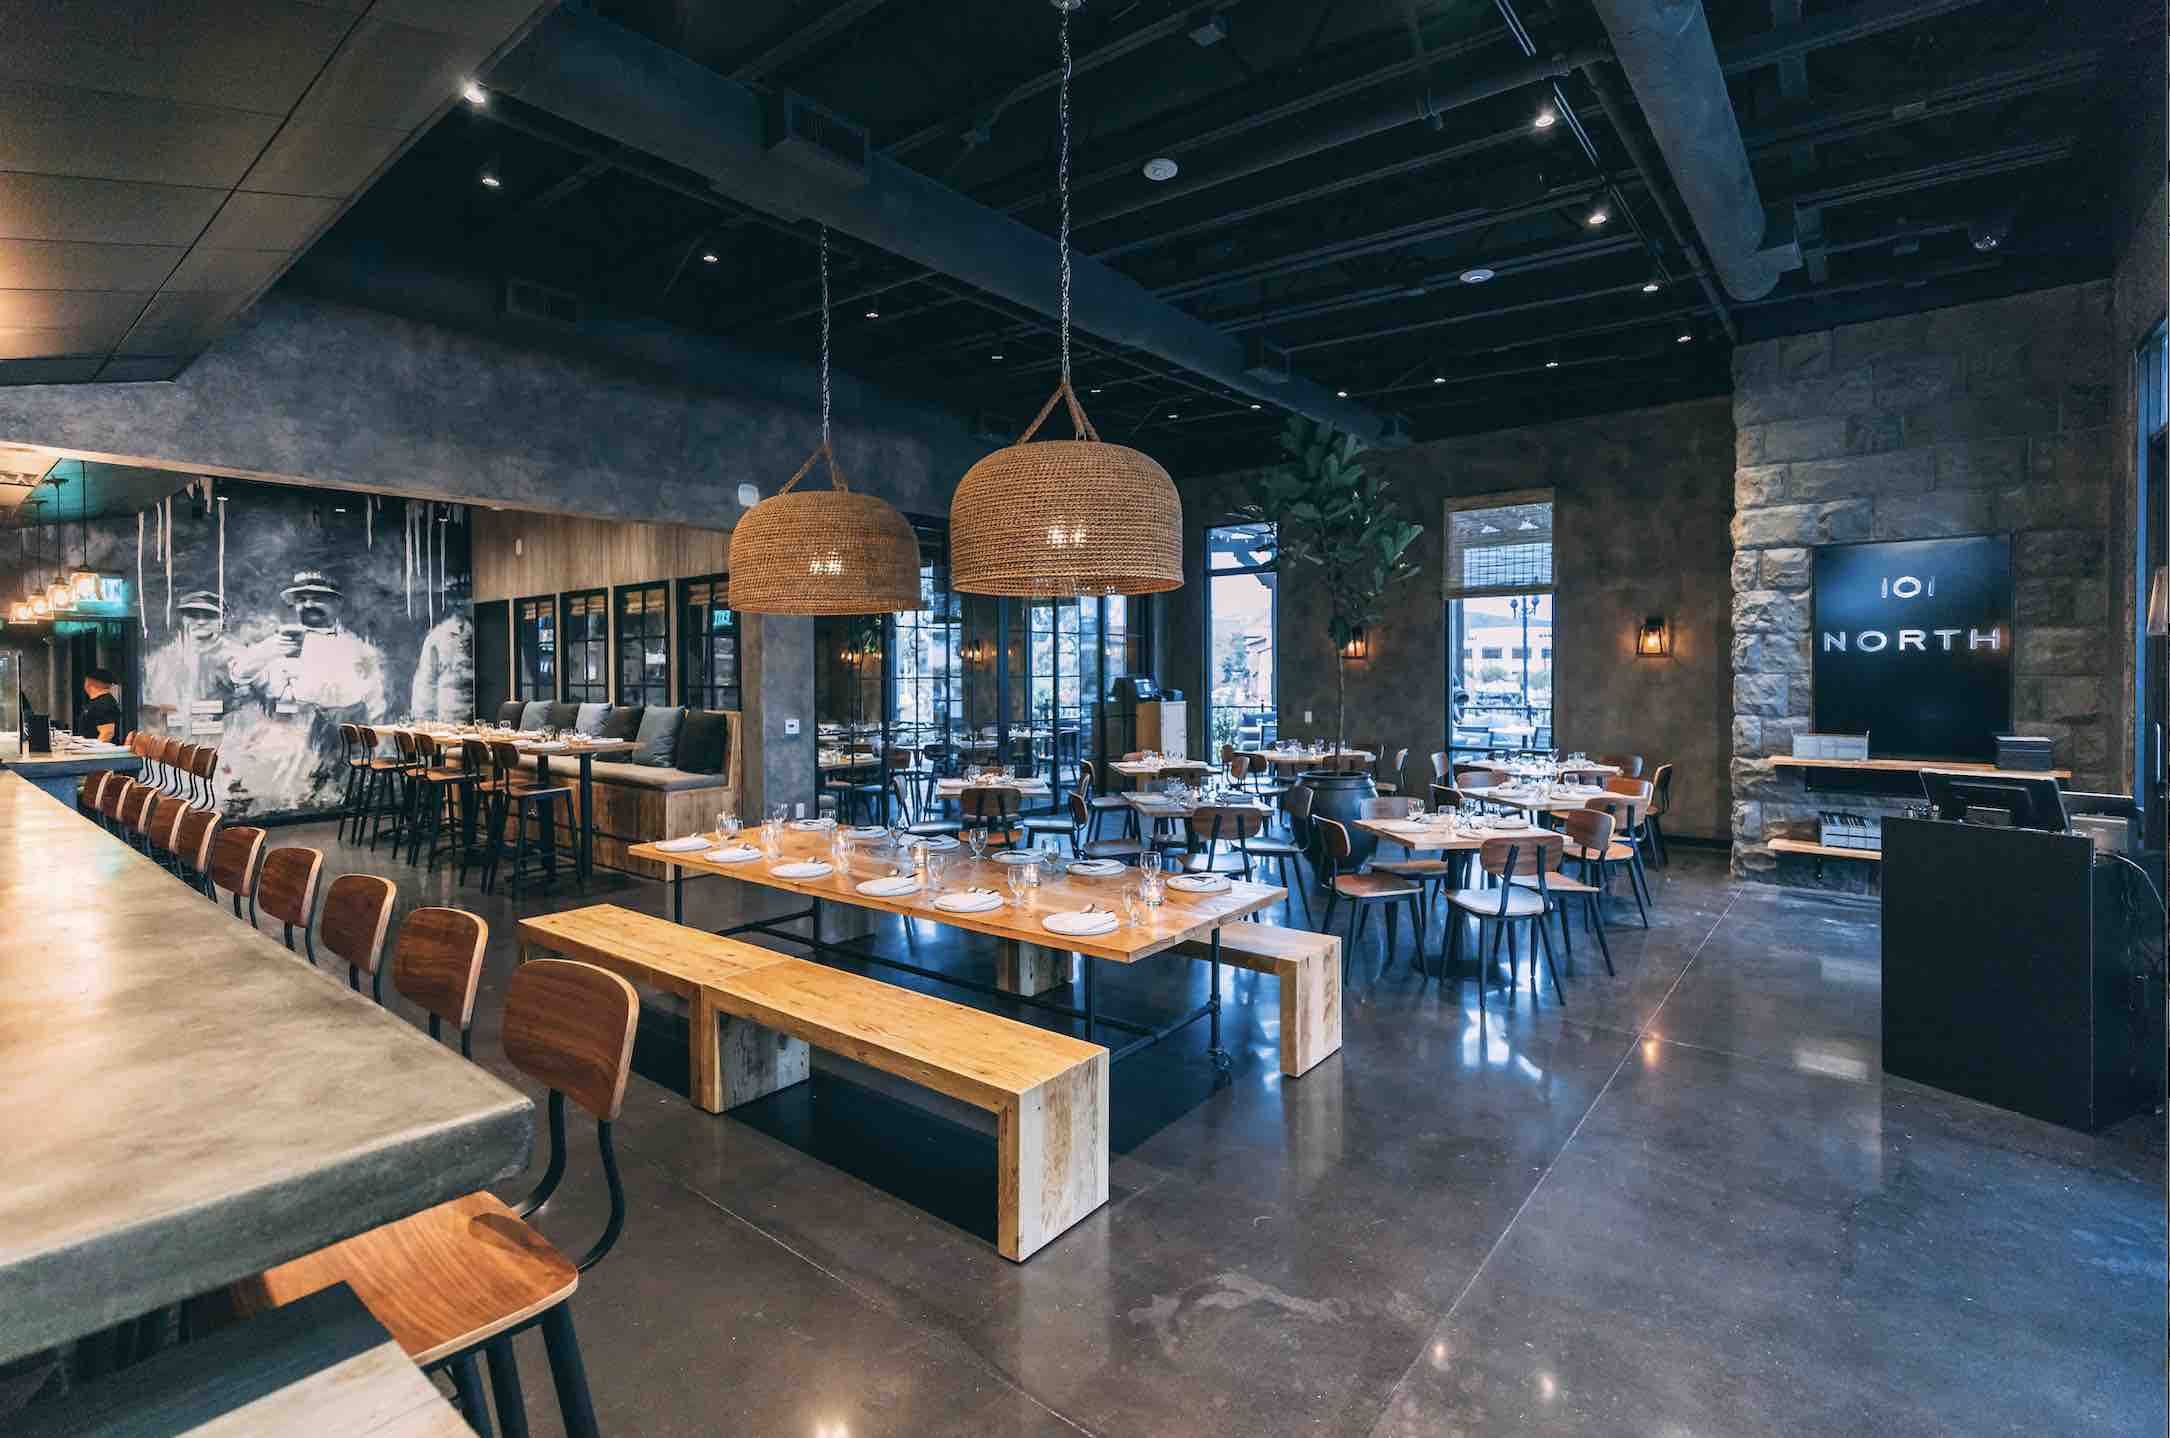 101 North Eatery and Bar interiro shot of one of the best Westlake VIllage restaurants